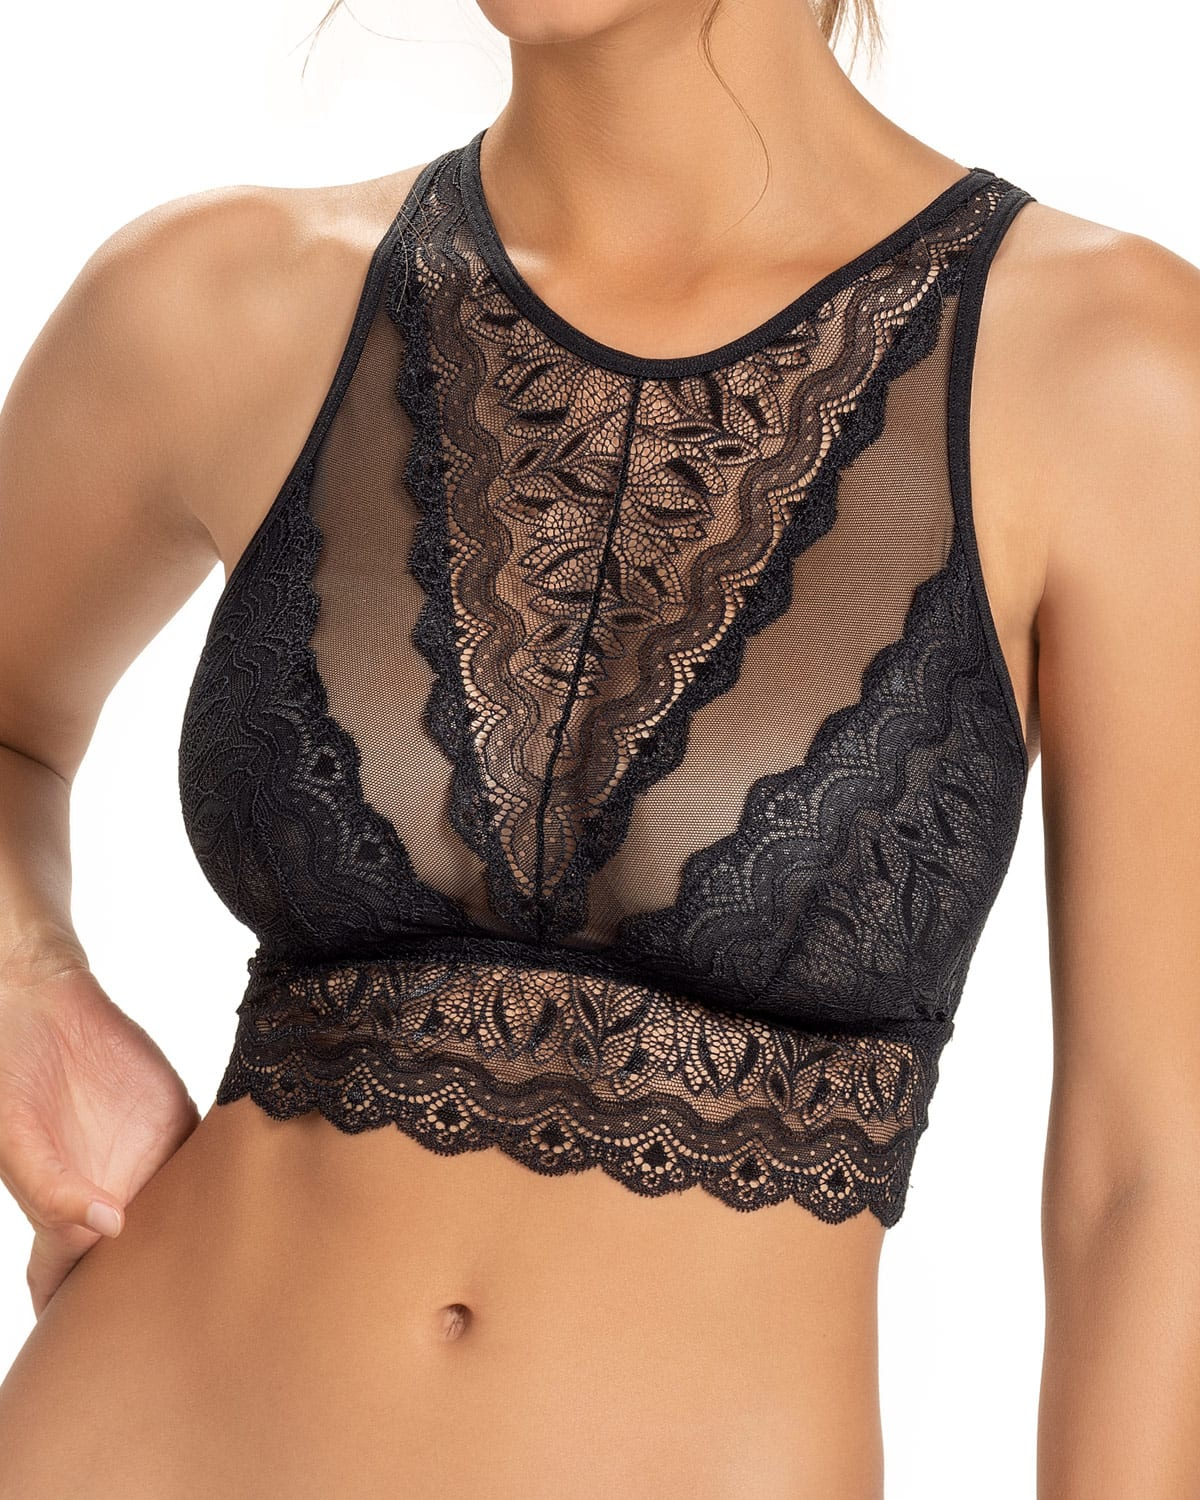 High-Neck Unlined Lace Crop Top Wireless Bralette